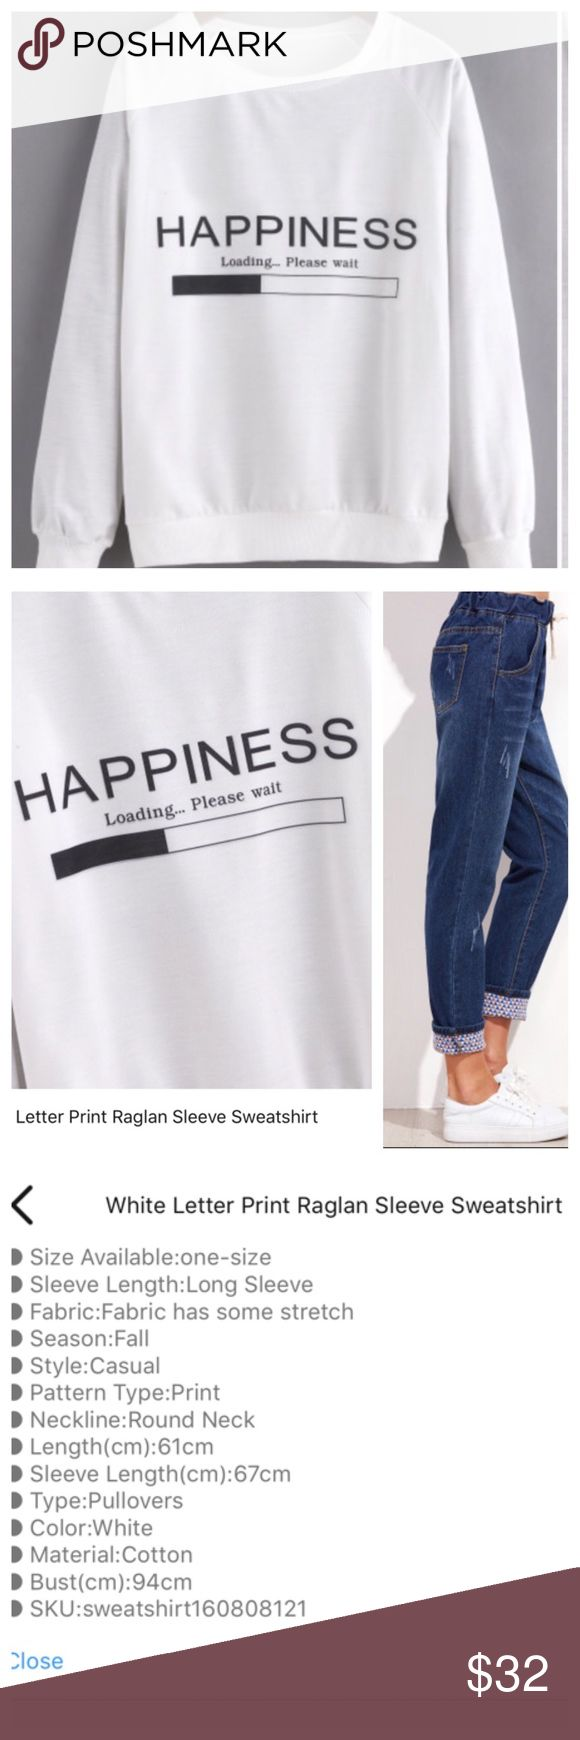 """HAPPINESS Loading..."" Light Sweatshirt ""HAPPINESS Loading...please wait..."" Light Weight Raglan Sleeve Sweatshirt  Super on trend for Fall and Winter. Cotton blend. Great Weekend Wear! See details and size chart above. Direct from maker without tags. OS- fits S/M best. Pair with the cute jeans shown (separate listing) and just be COZY! Price firm unless bundled. TonisTwinkles Sweaters Crew & Scoop Necks"